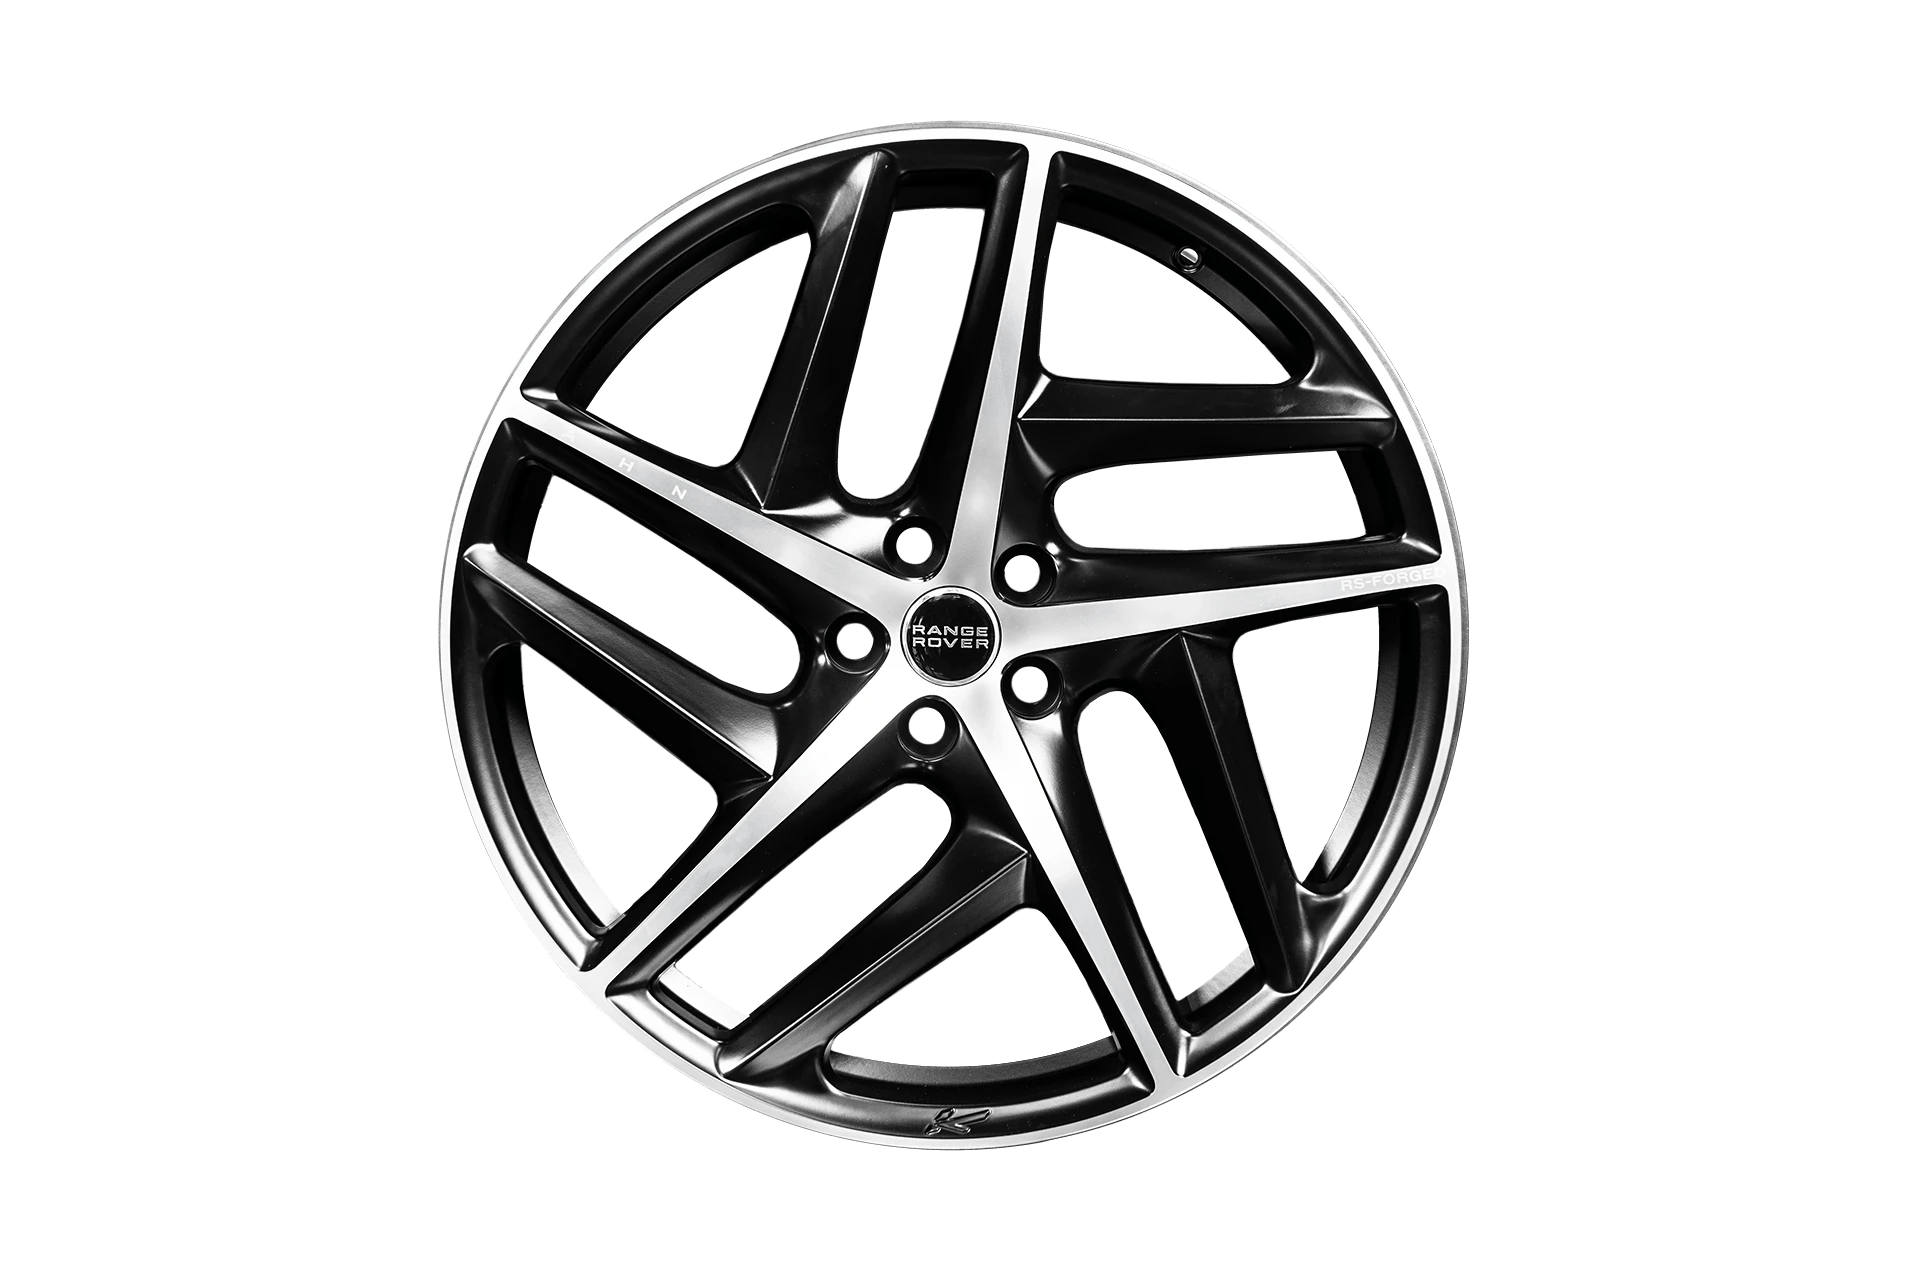 Range Rover Evoque (2018-Present) Type 52 RS-Forged Alloy Wheels - Project Kahn